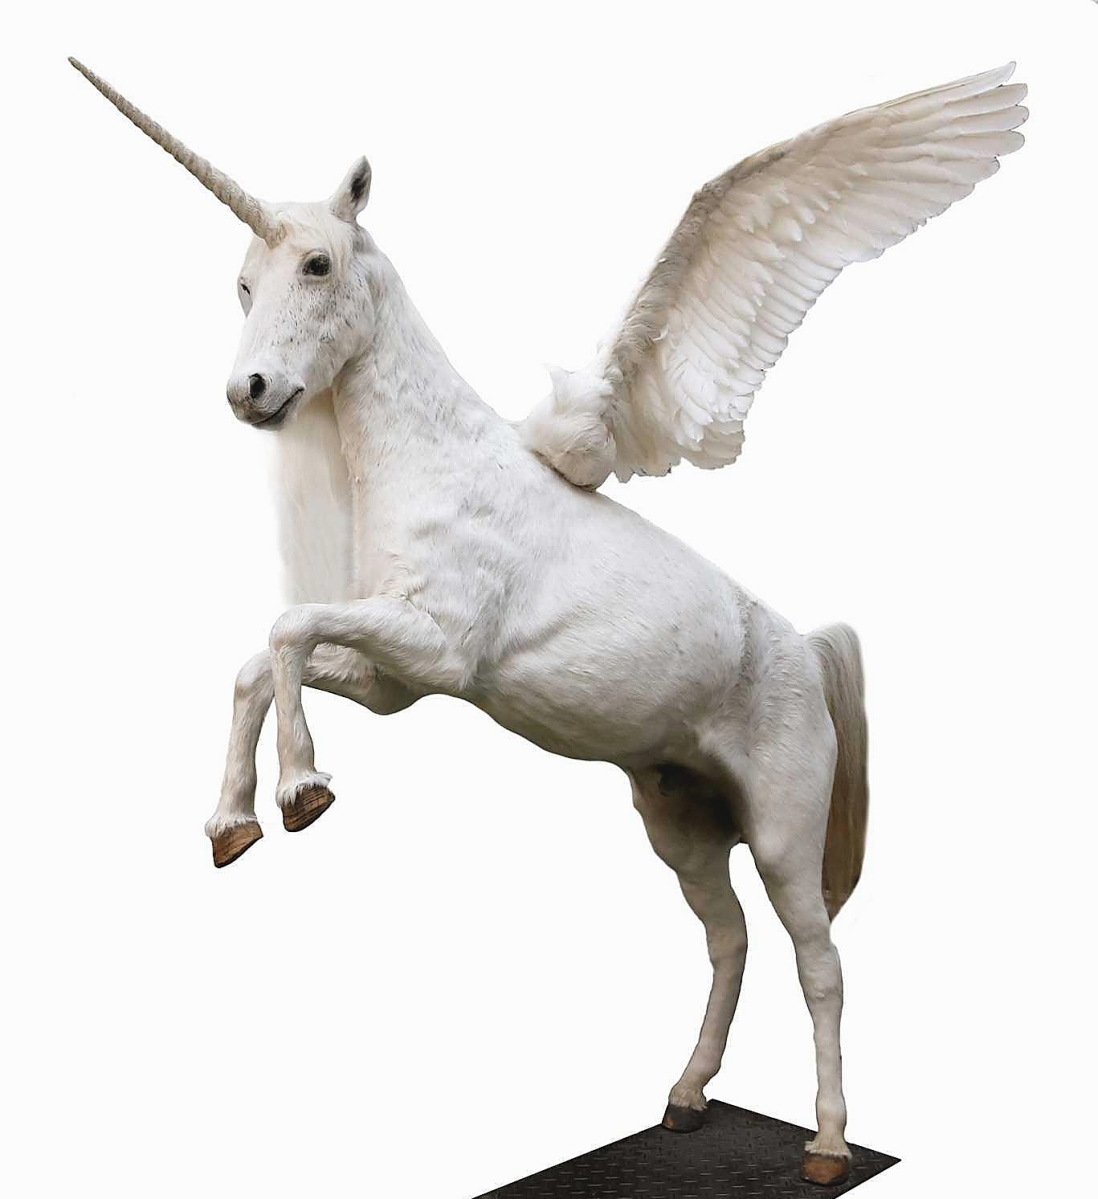 """""""It was an immense item and the absolute star of the show,"""" Mark Wilkinson said of the taxidermy alicorn that soared to sell to a Polish private collector who prevailed against other international bidders to bag it for $11,900."""